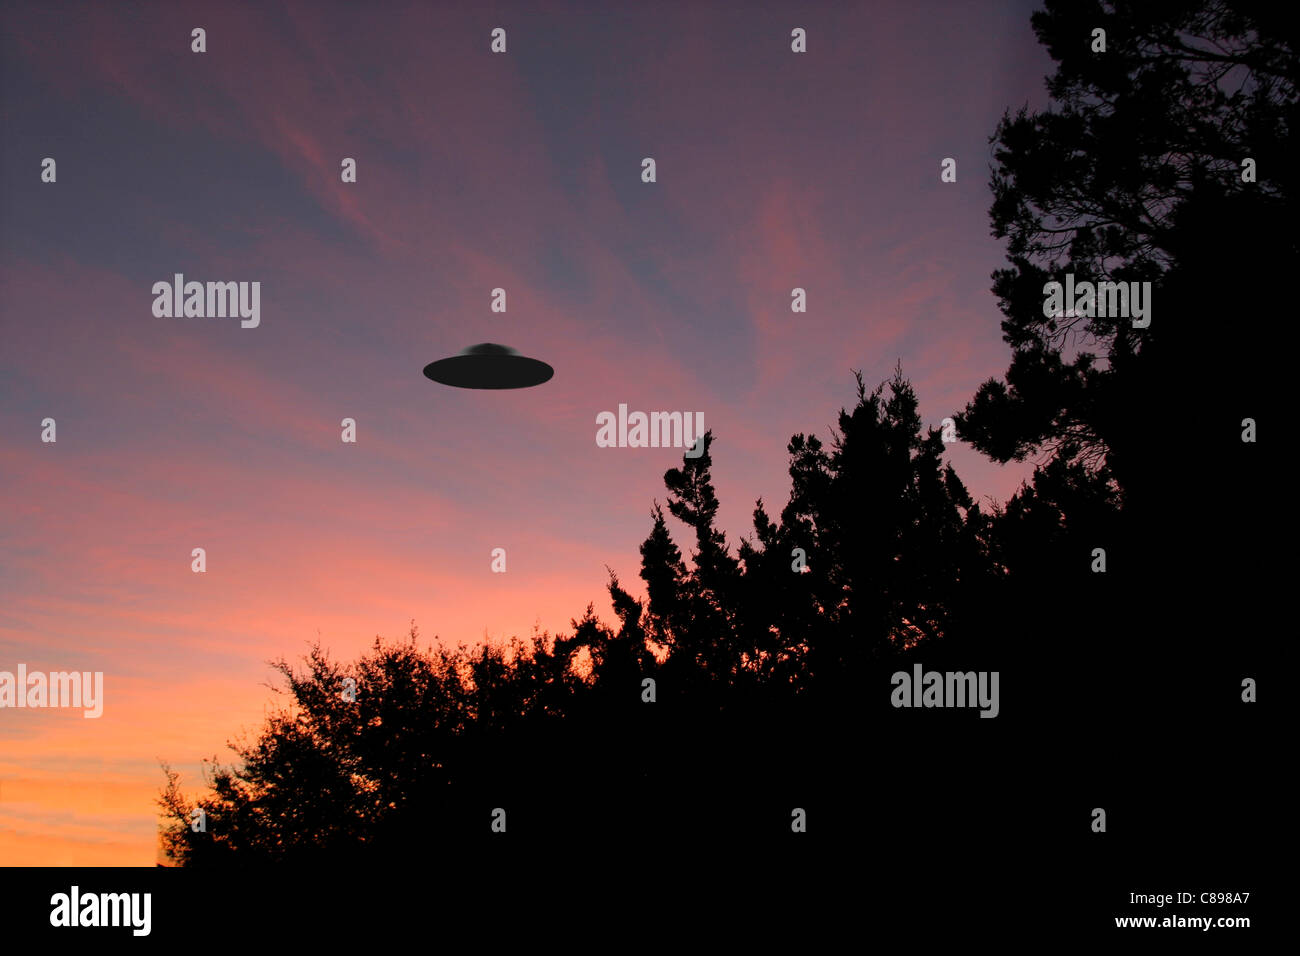 Sinister looking UFO silhouettes against sunrise - Stock Image